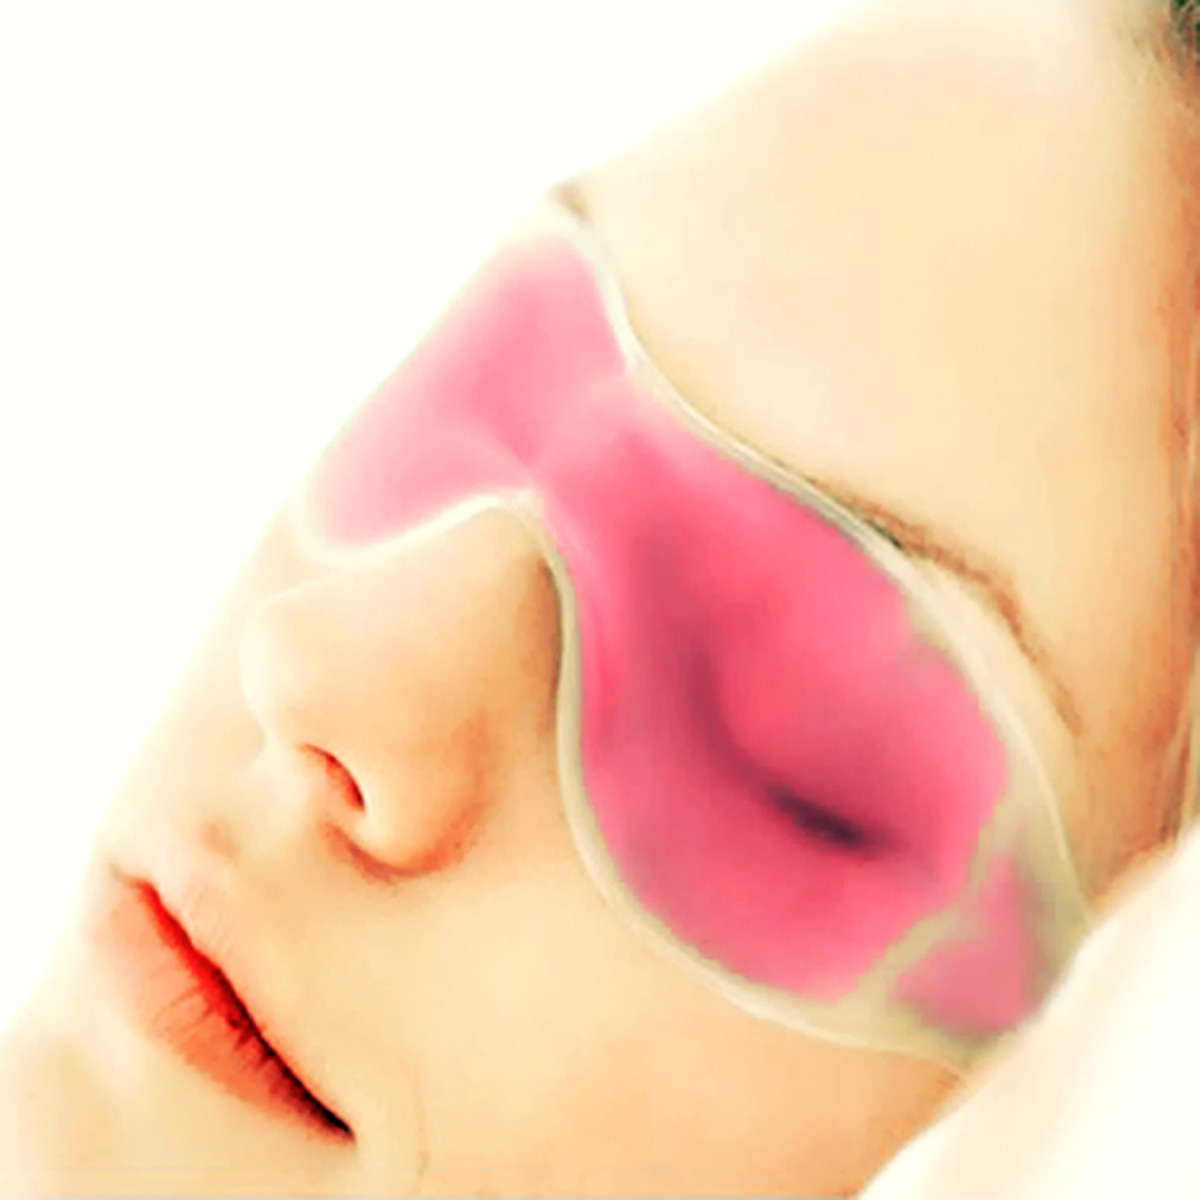 Cool Icy Squishies Squishy Gel Remove Dark Circles Relieve Fatigue Headache Eyepatch Eye Mask